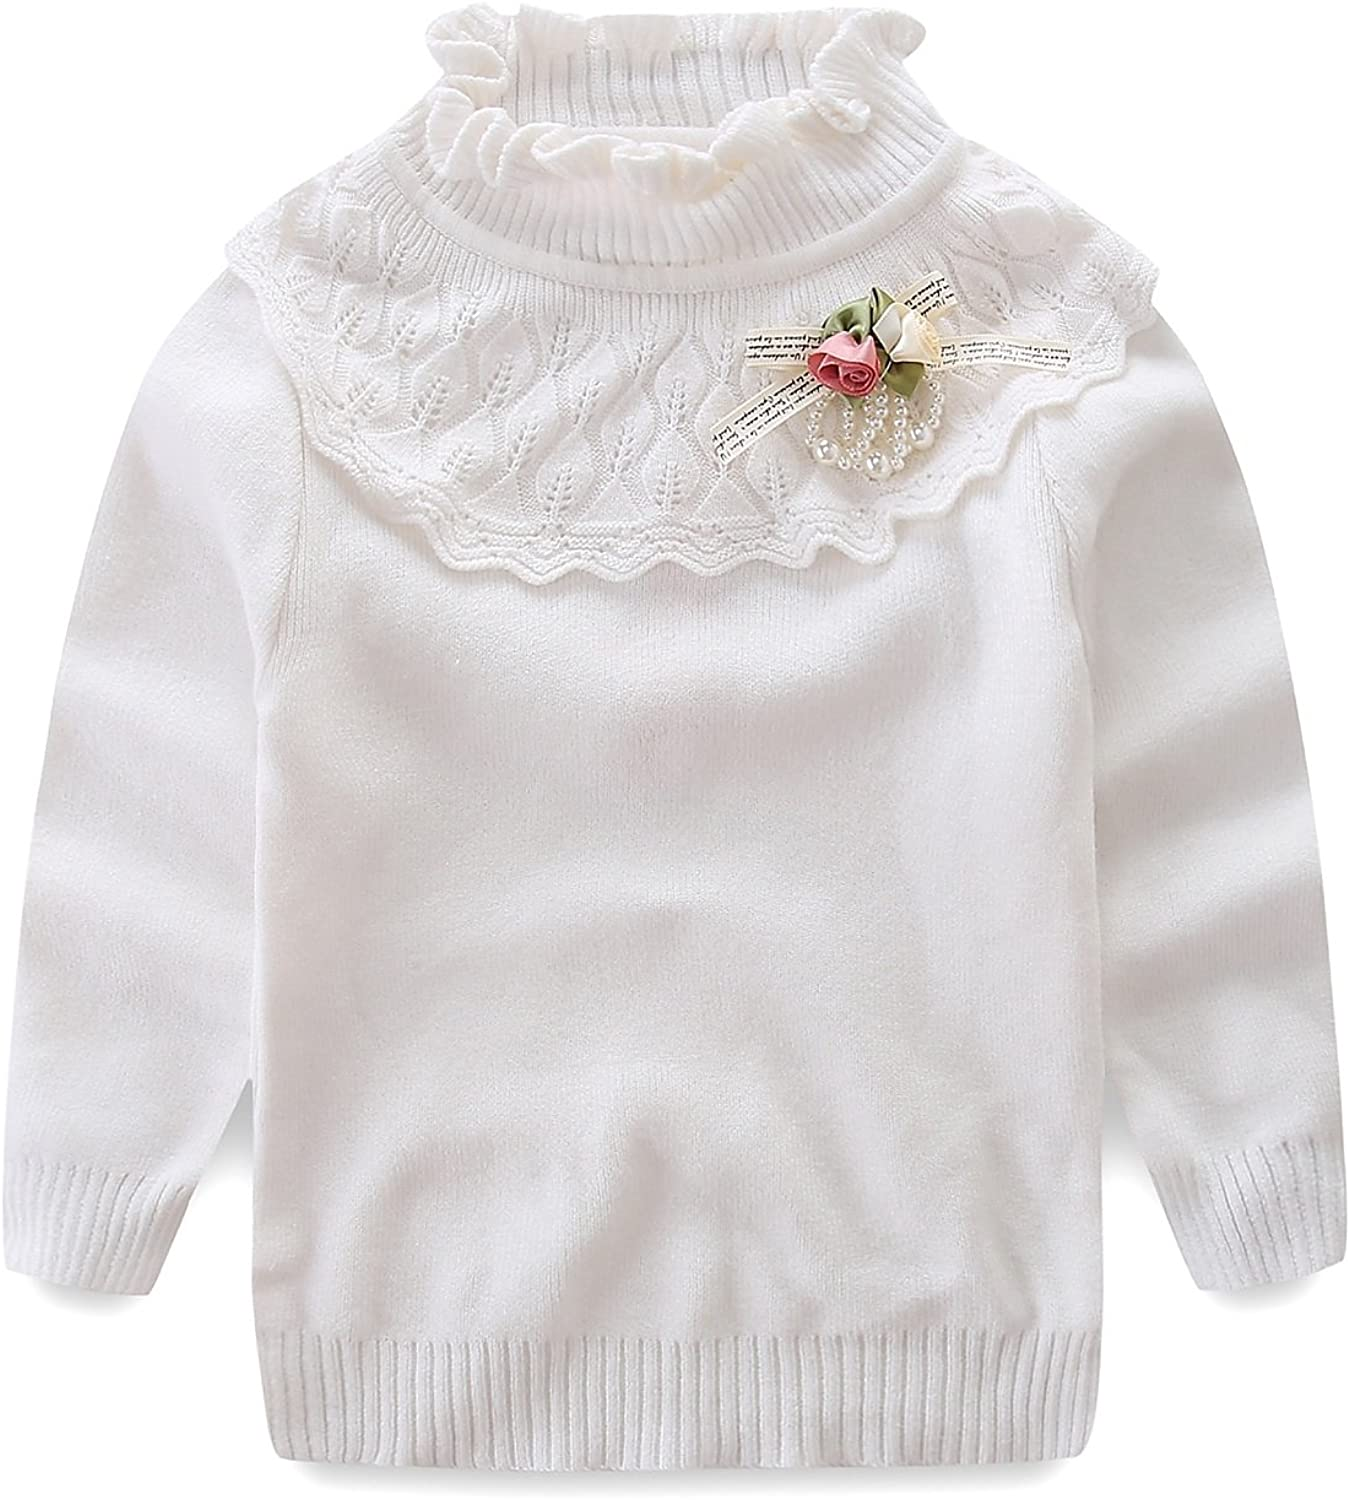 Little Girl Turtleneck Lace Sweater Autumn/Winter Knit Pullover 4T White